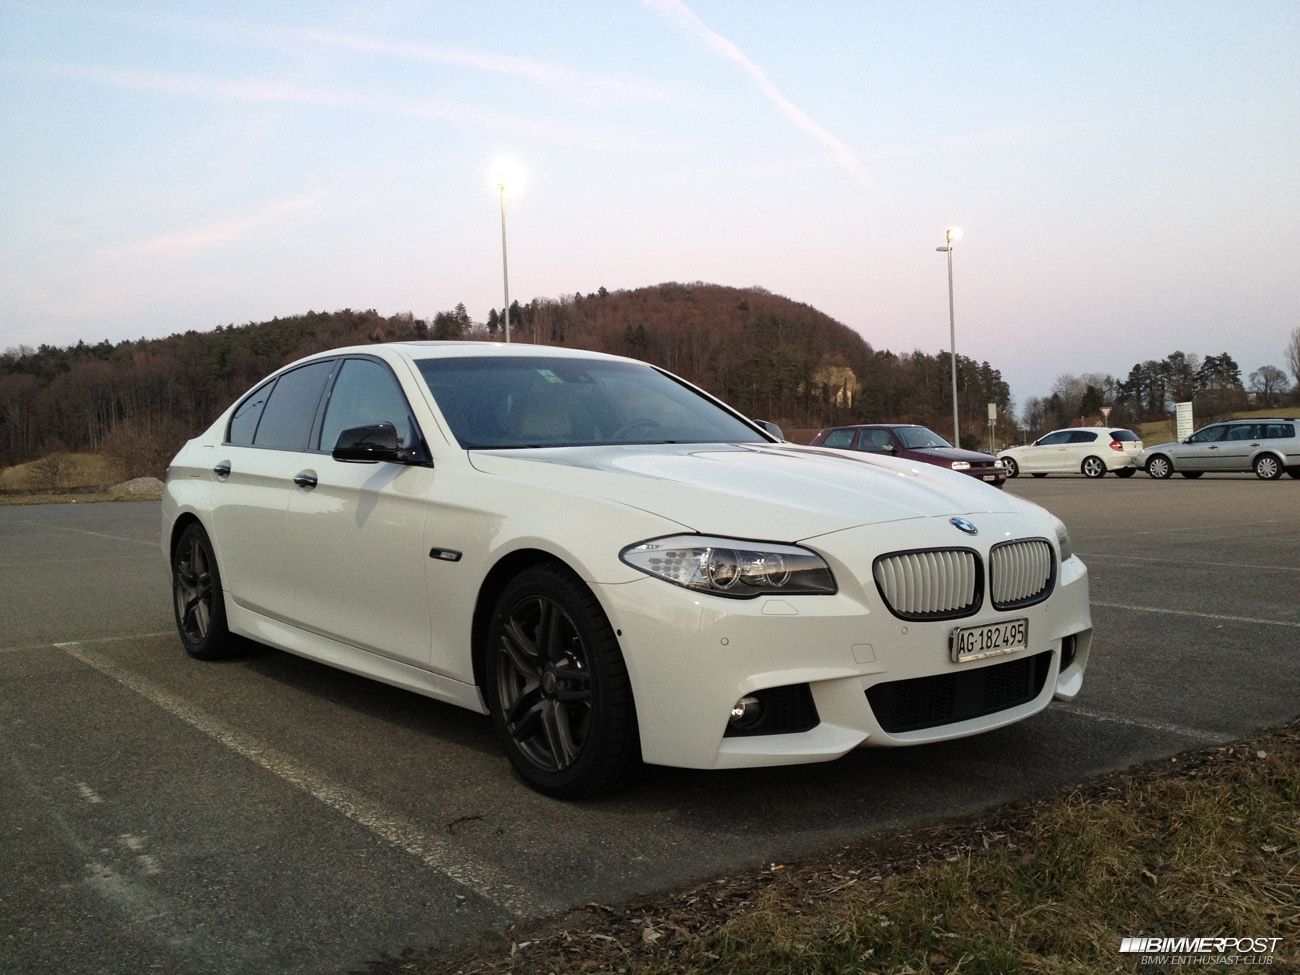 Tsk Playa S 2011 Bmw 535d F10 Bimmerpost Garage